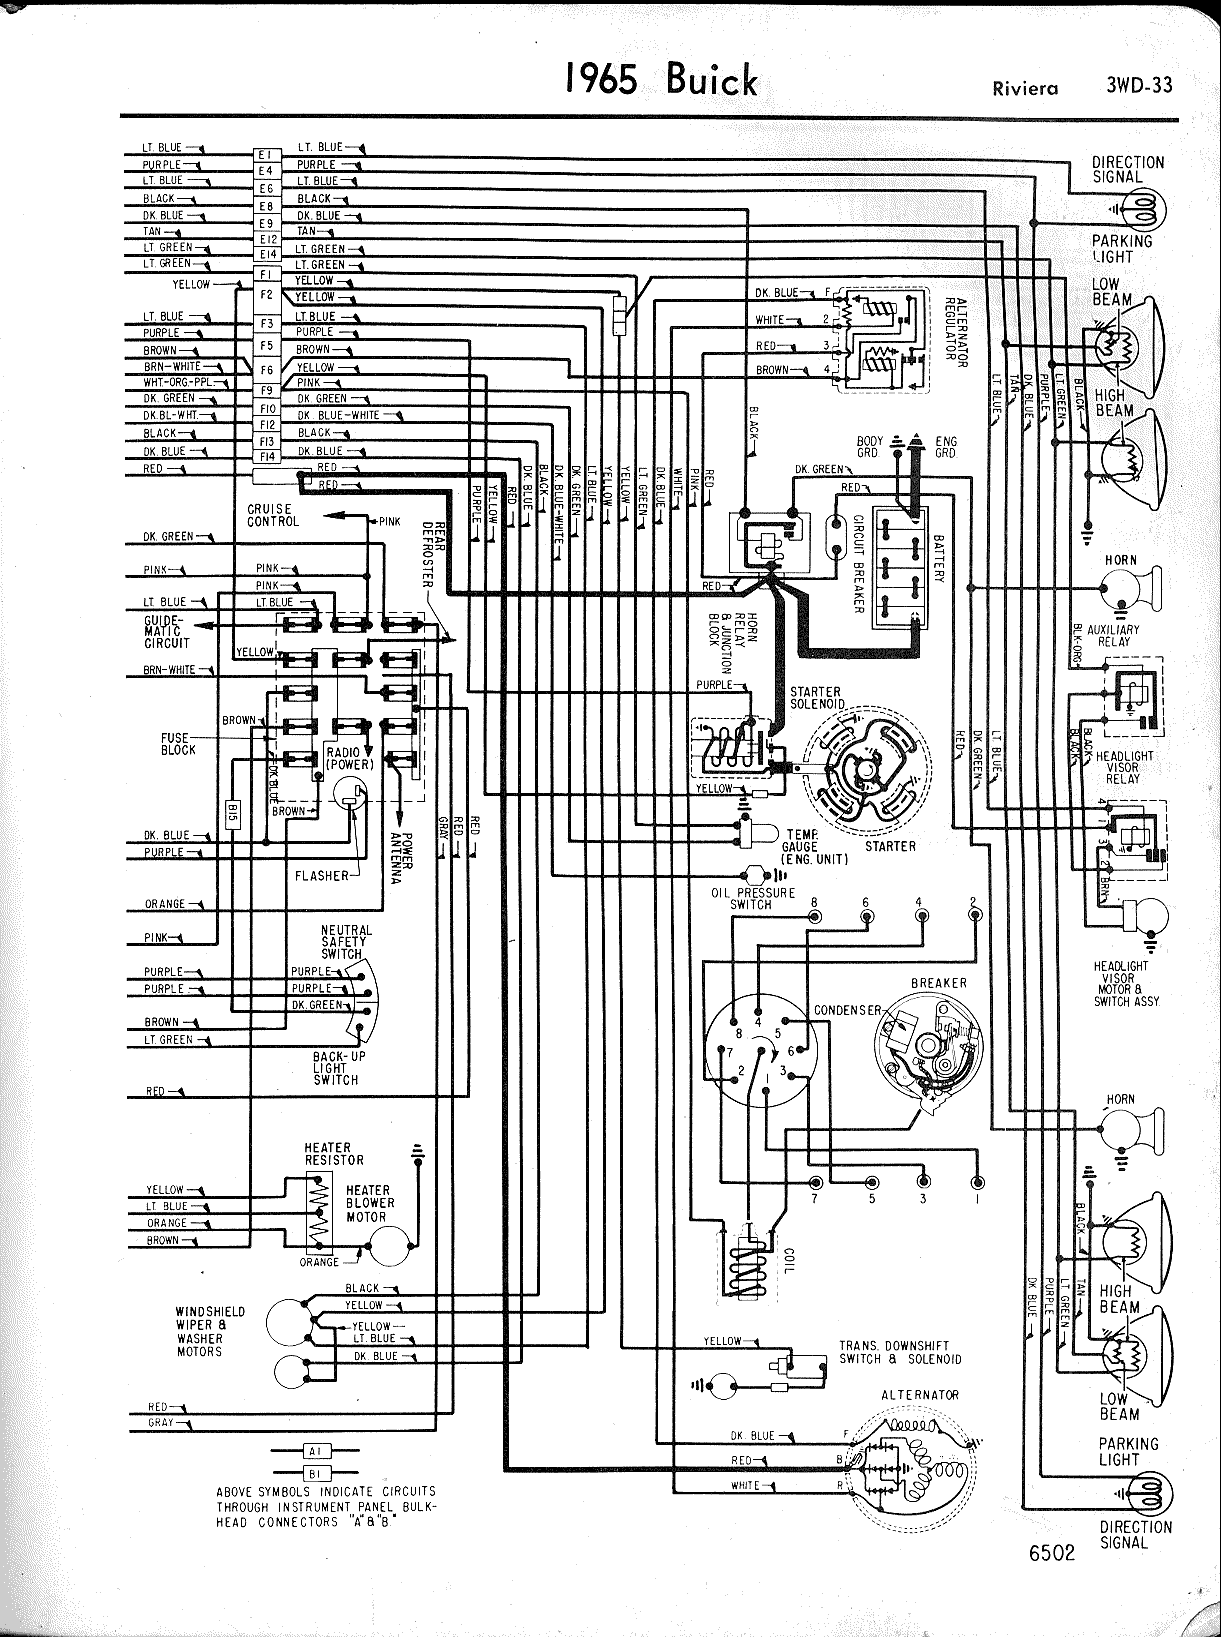 1965 riviera right half  64 buick skylark more buick ads � buick wiring  diagrams